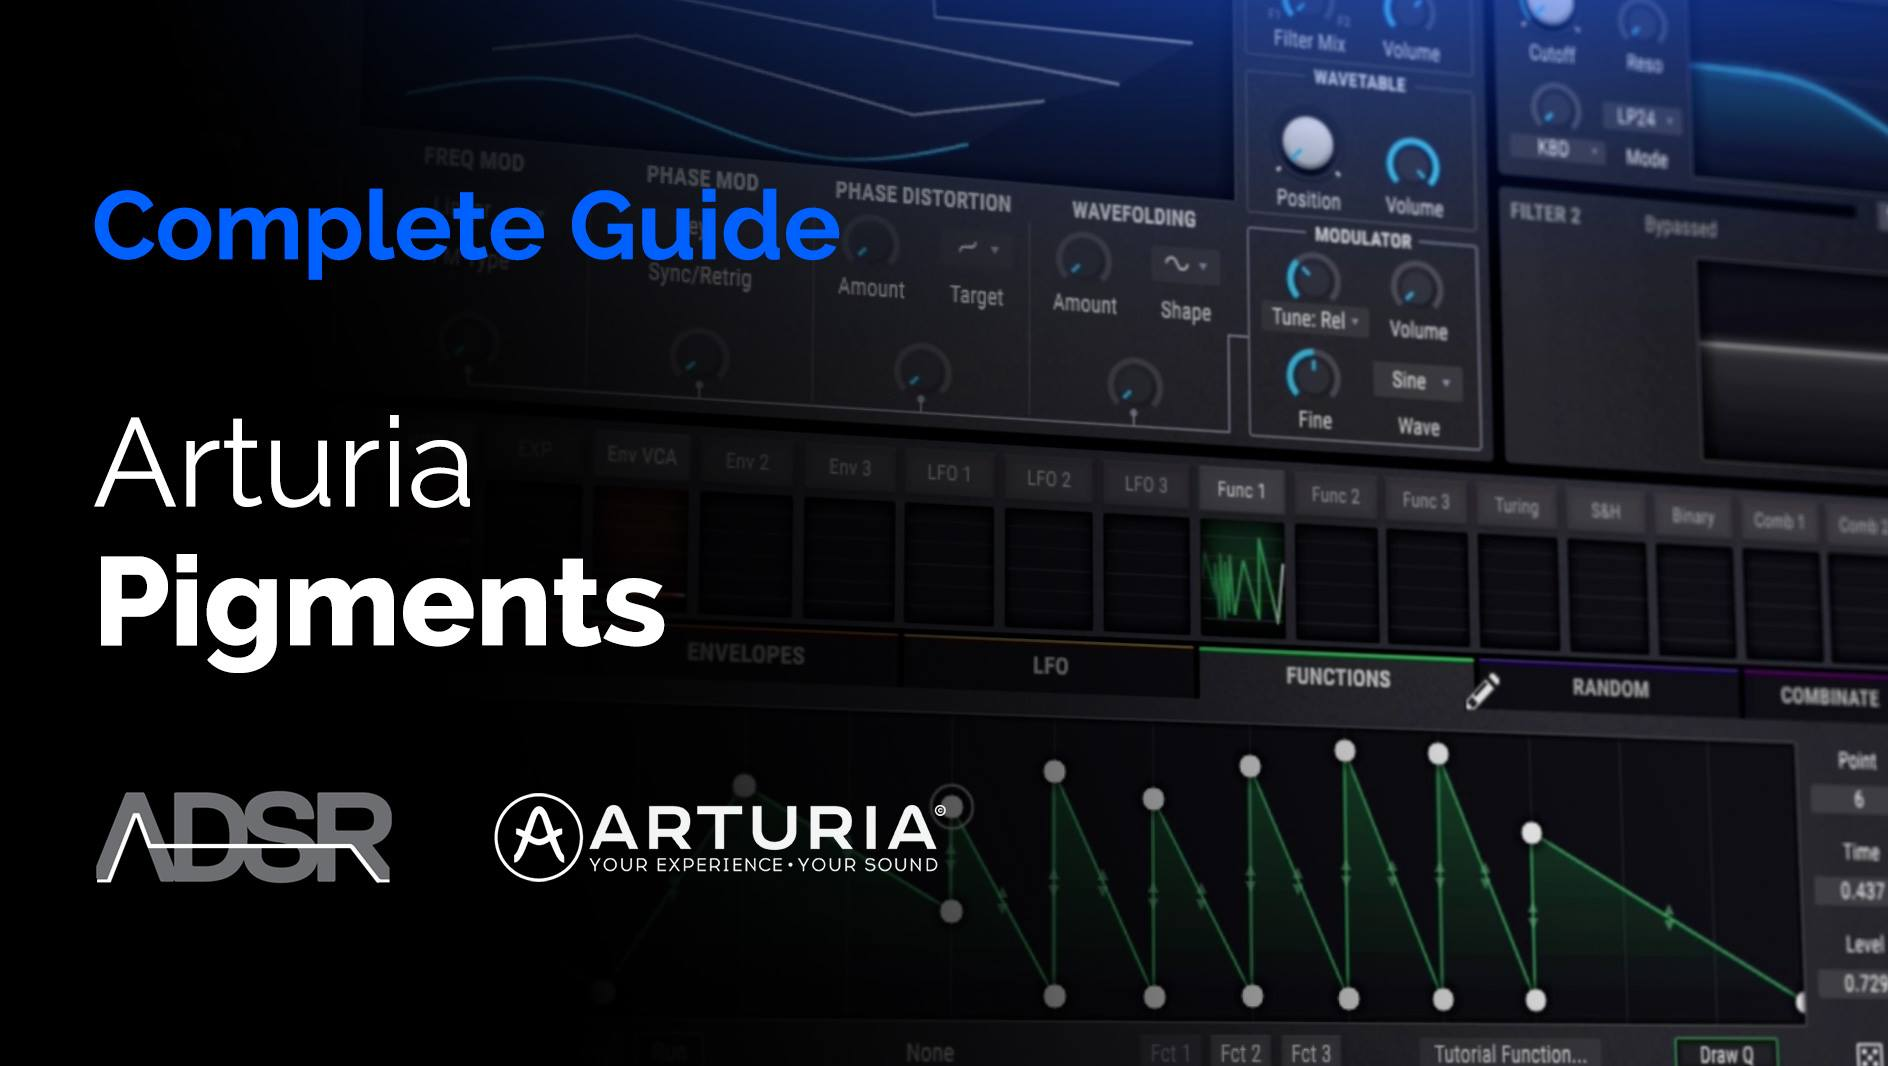 Complete Guide to Arturia Pigments